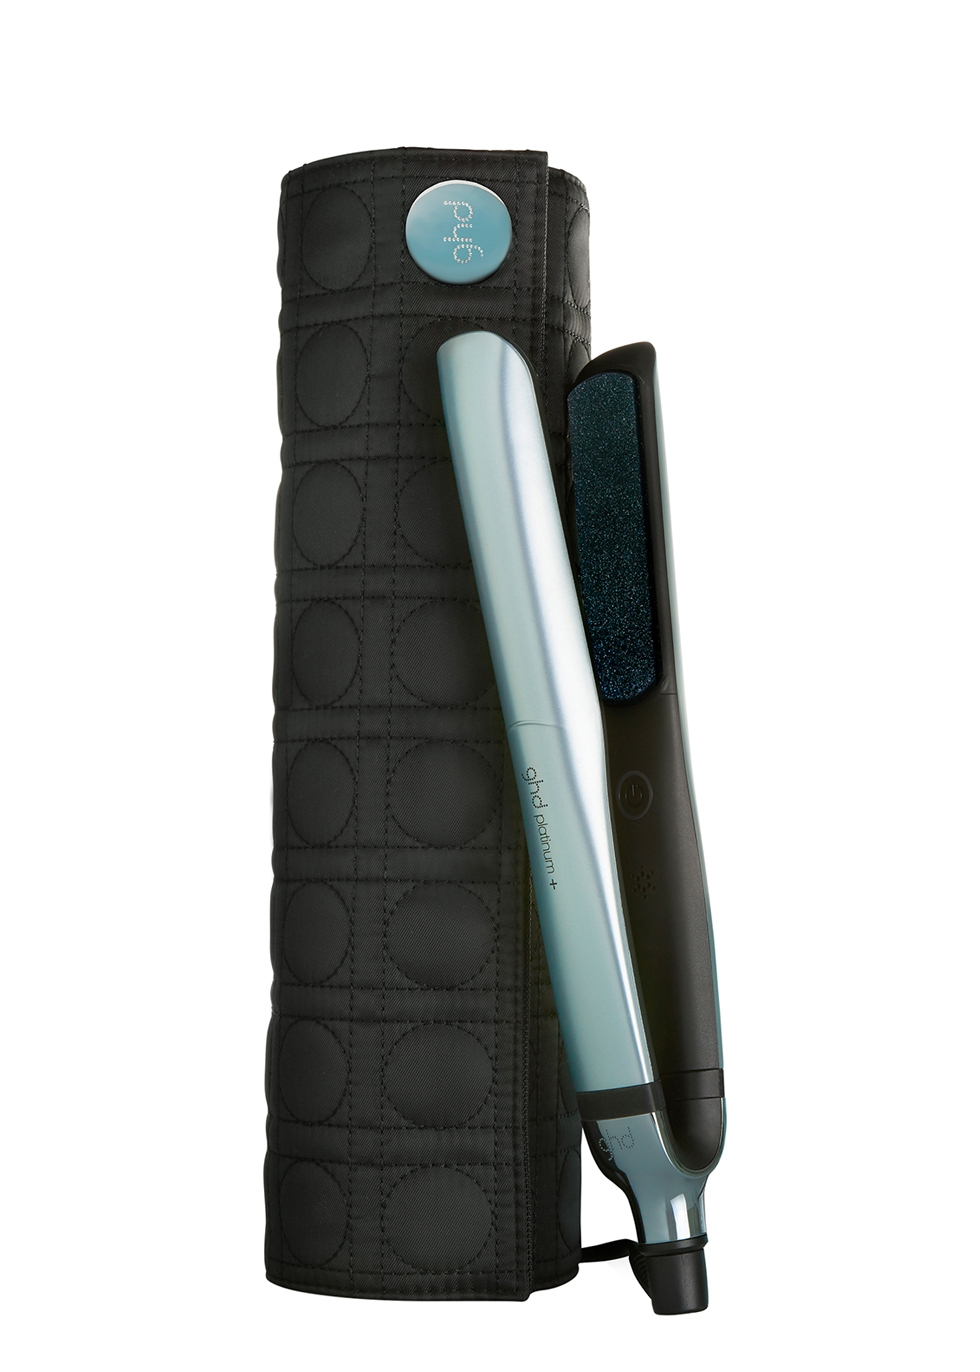 Platinum+ Styler - Glacial Blue - ghd